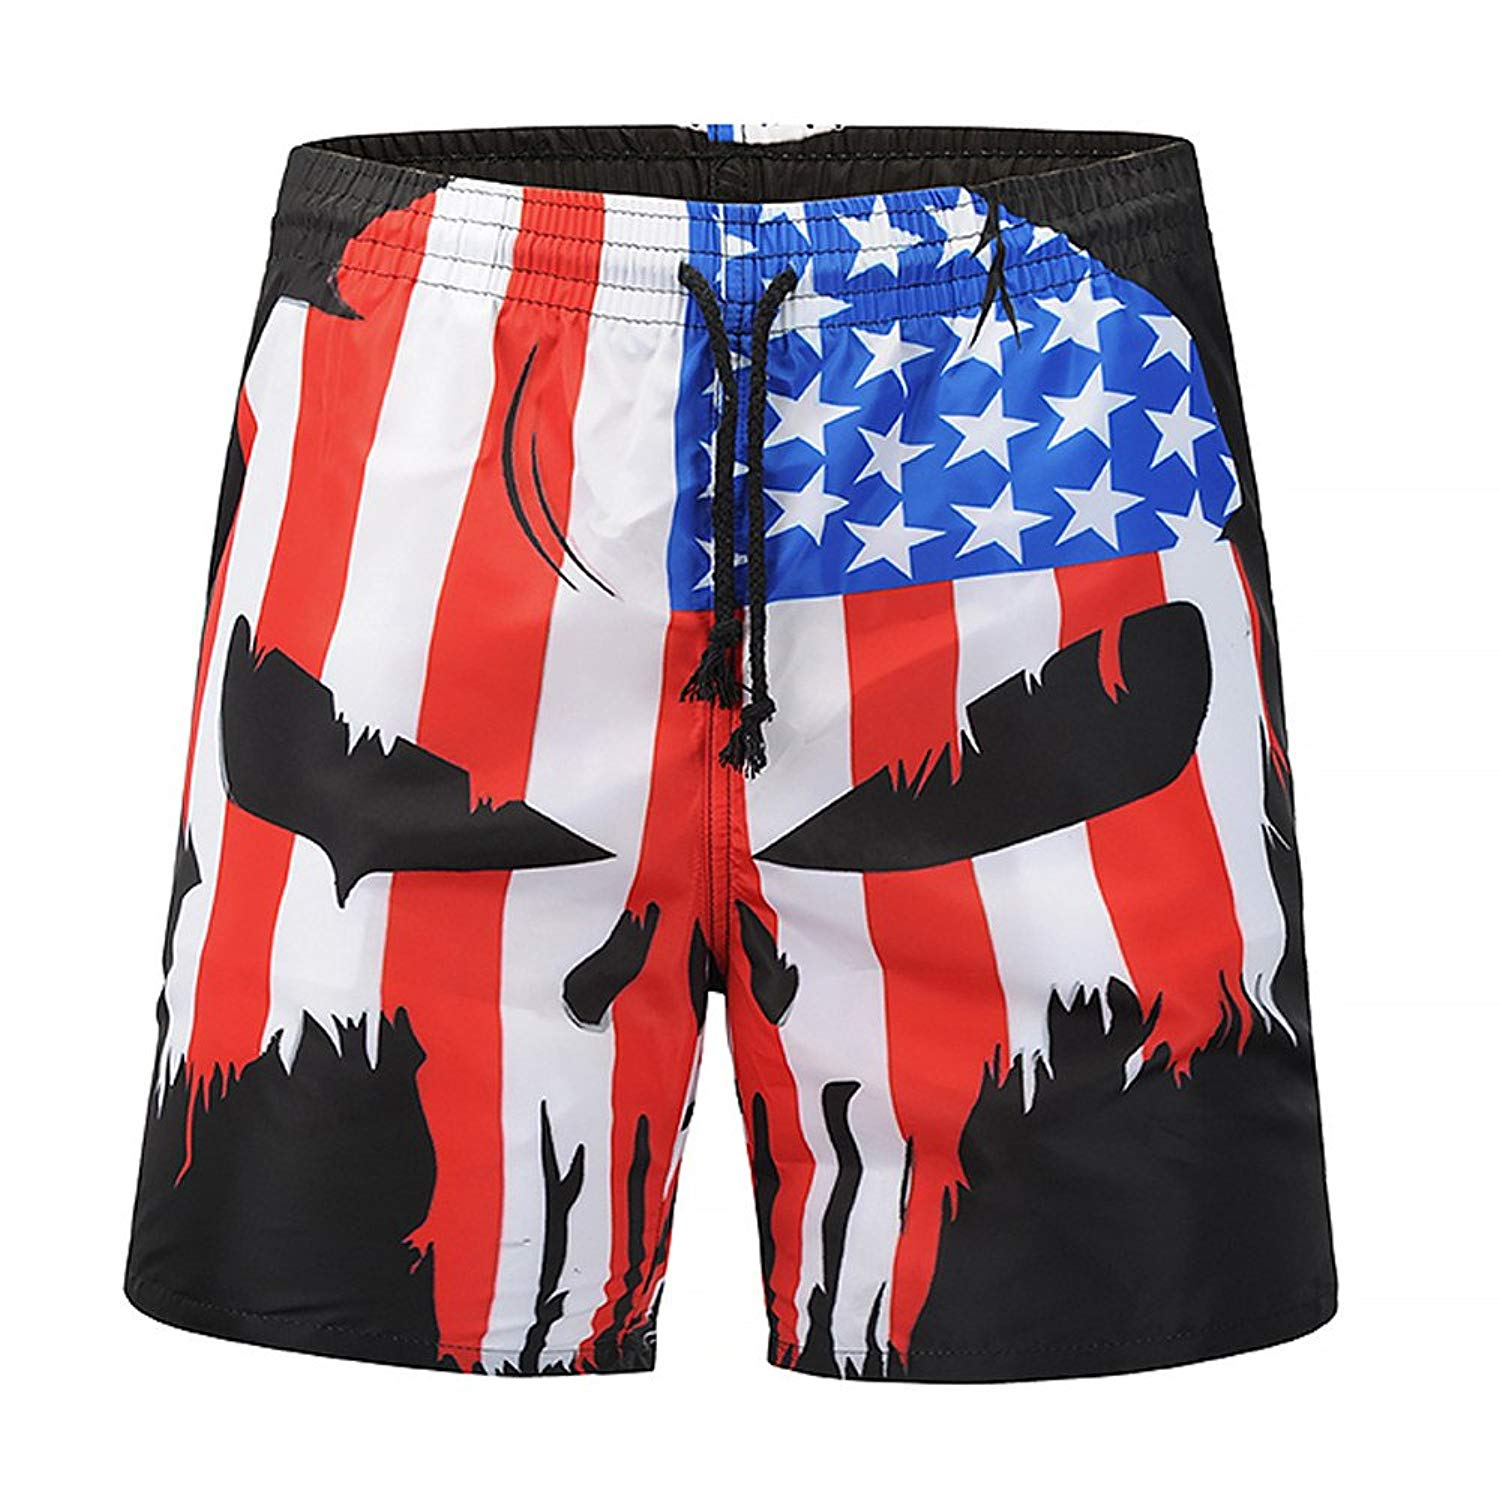 356041b521b2a Get Quotations · Mens Swim Trunks, Men's Skull Flag Print Beach Swim Trunks  Quick Dry Bathing Suits Casual